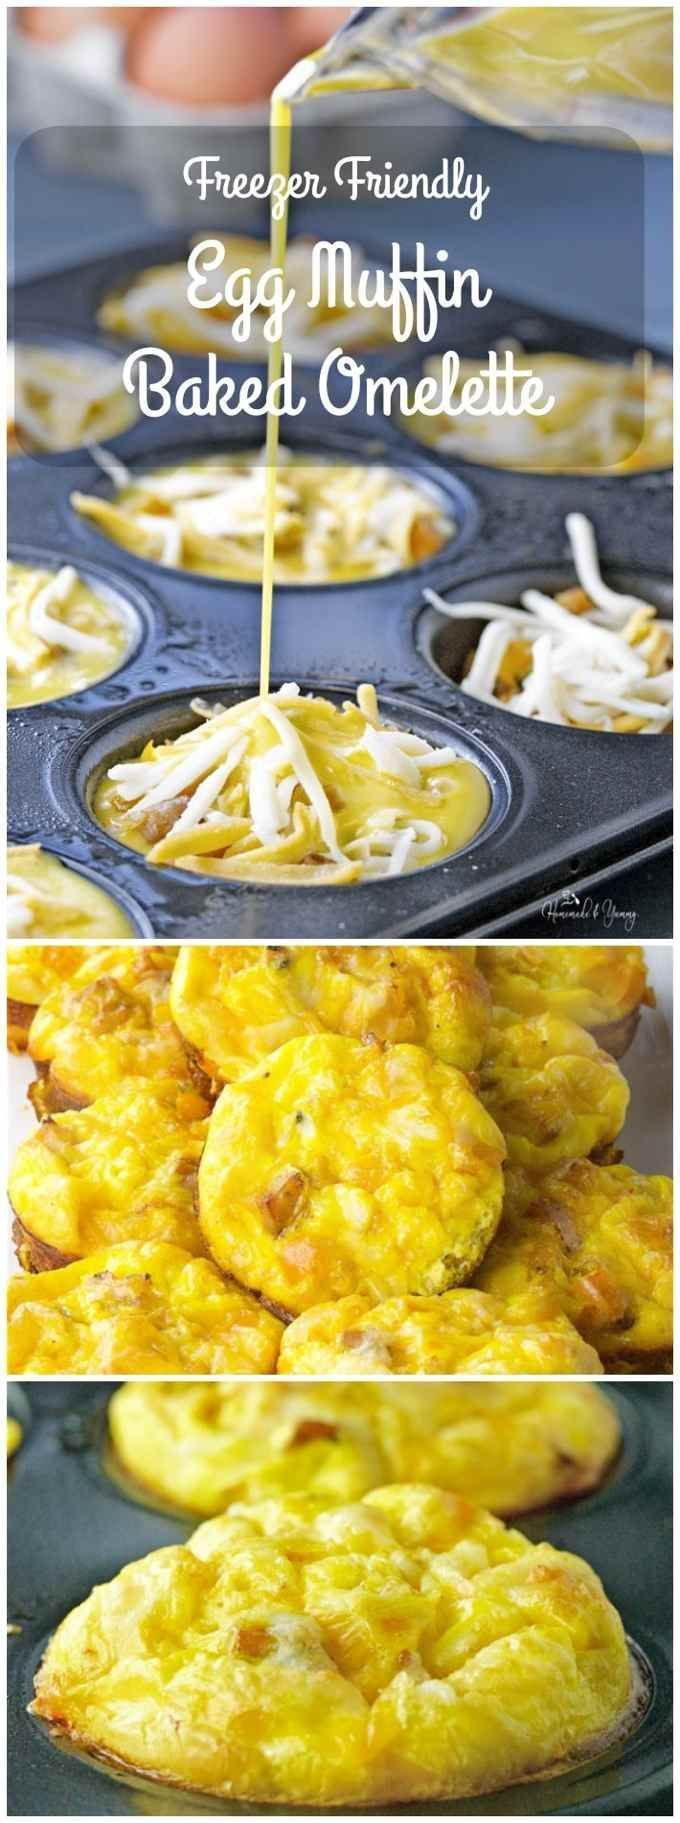 Freezer Friendly Egg Muffin Baked Omelette is great for breakfast, brunch or dinner. An easy way to feed a crowd. Freezer friendly means less work on busy days. | http://homemadeandyummy.com